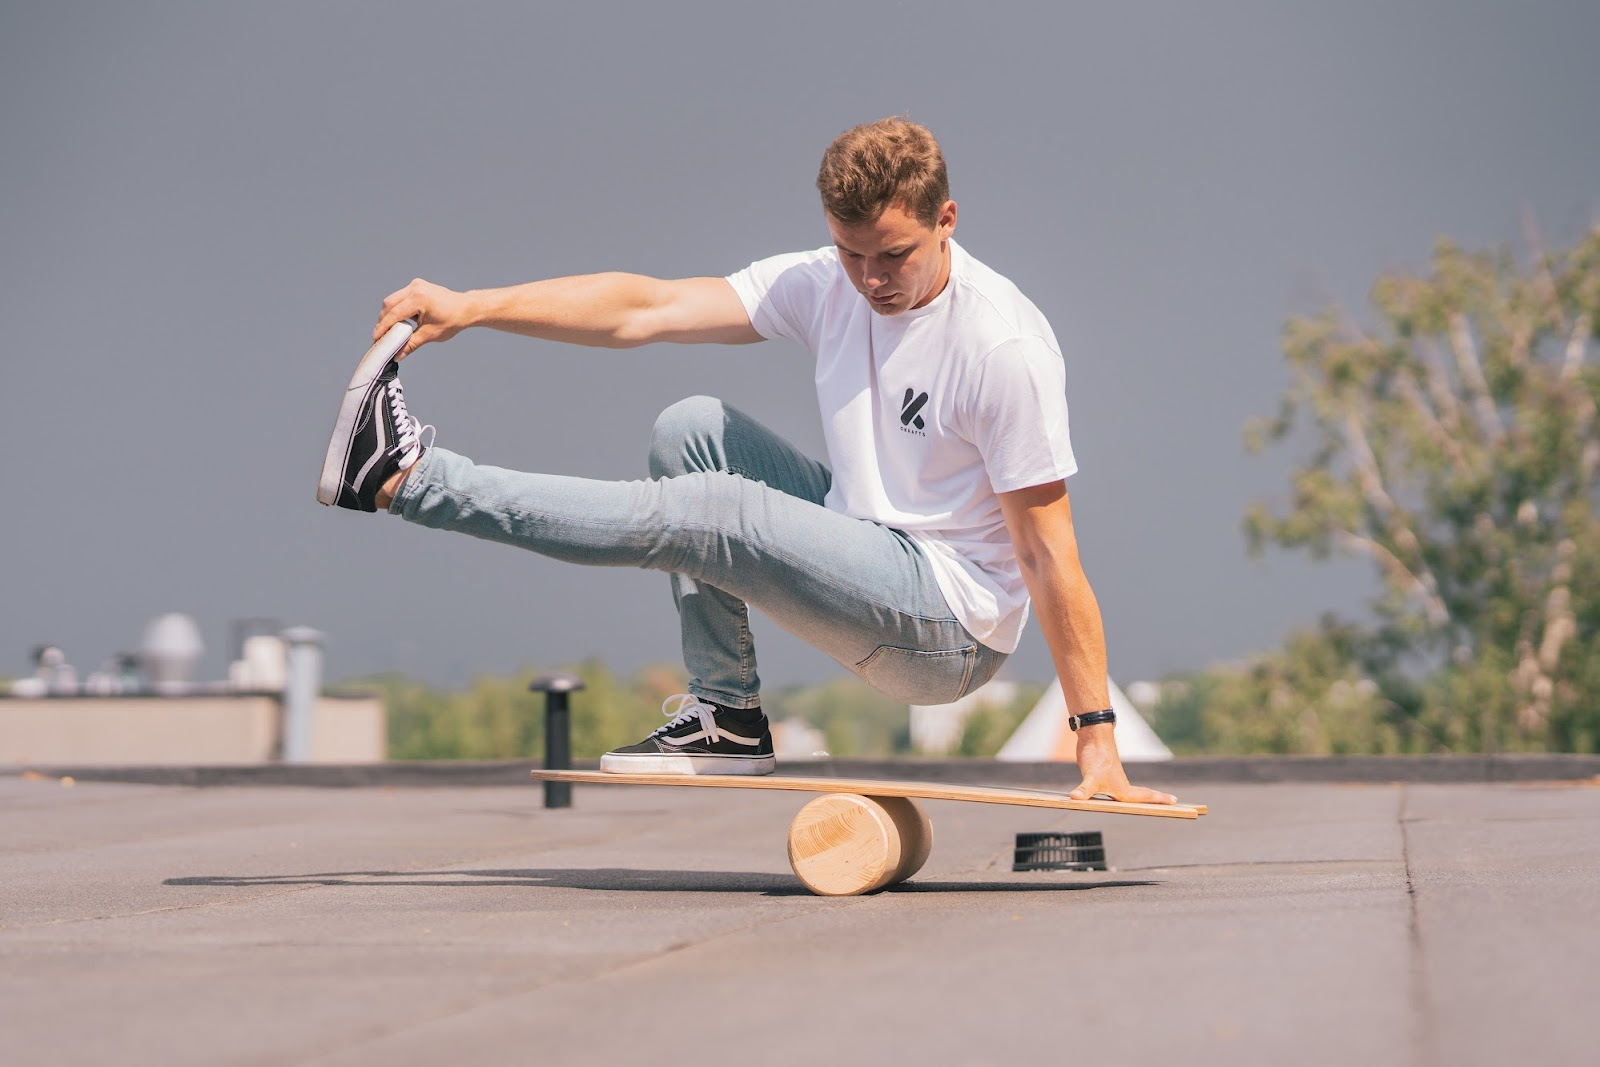 A guy balancing on a balance board on a rooftop